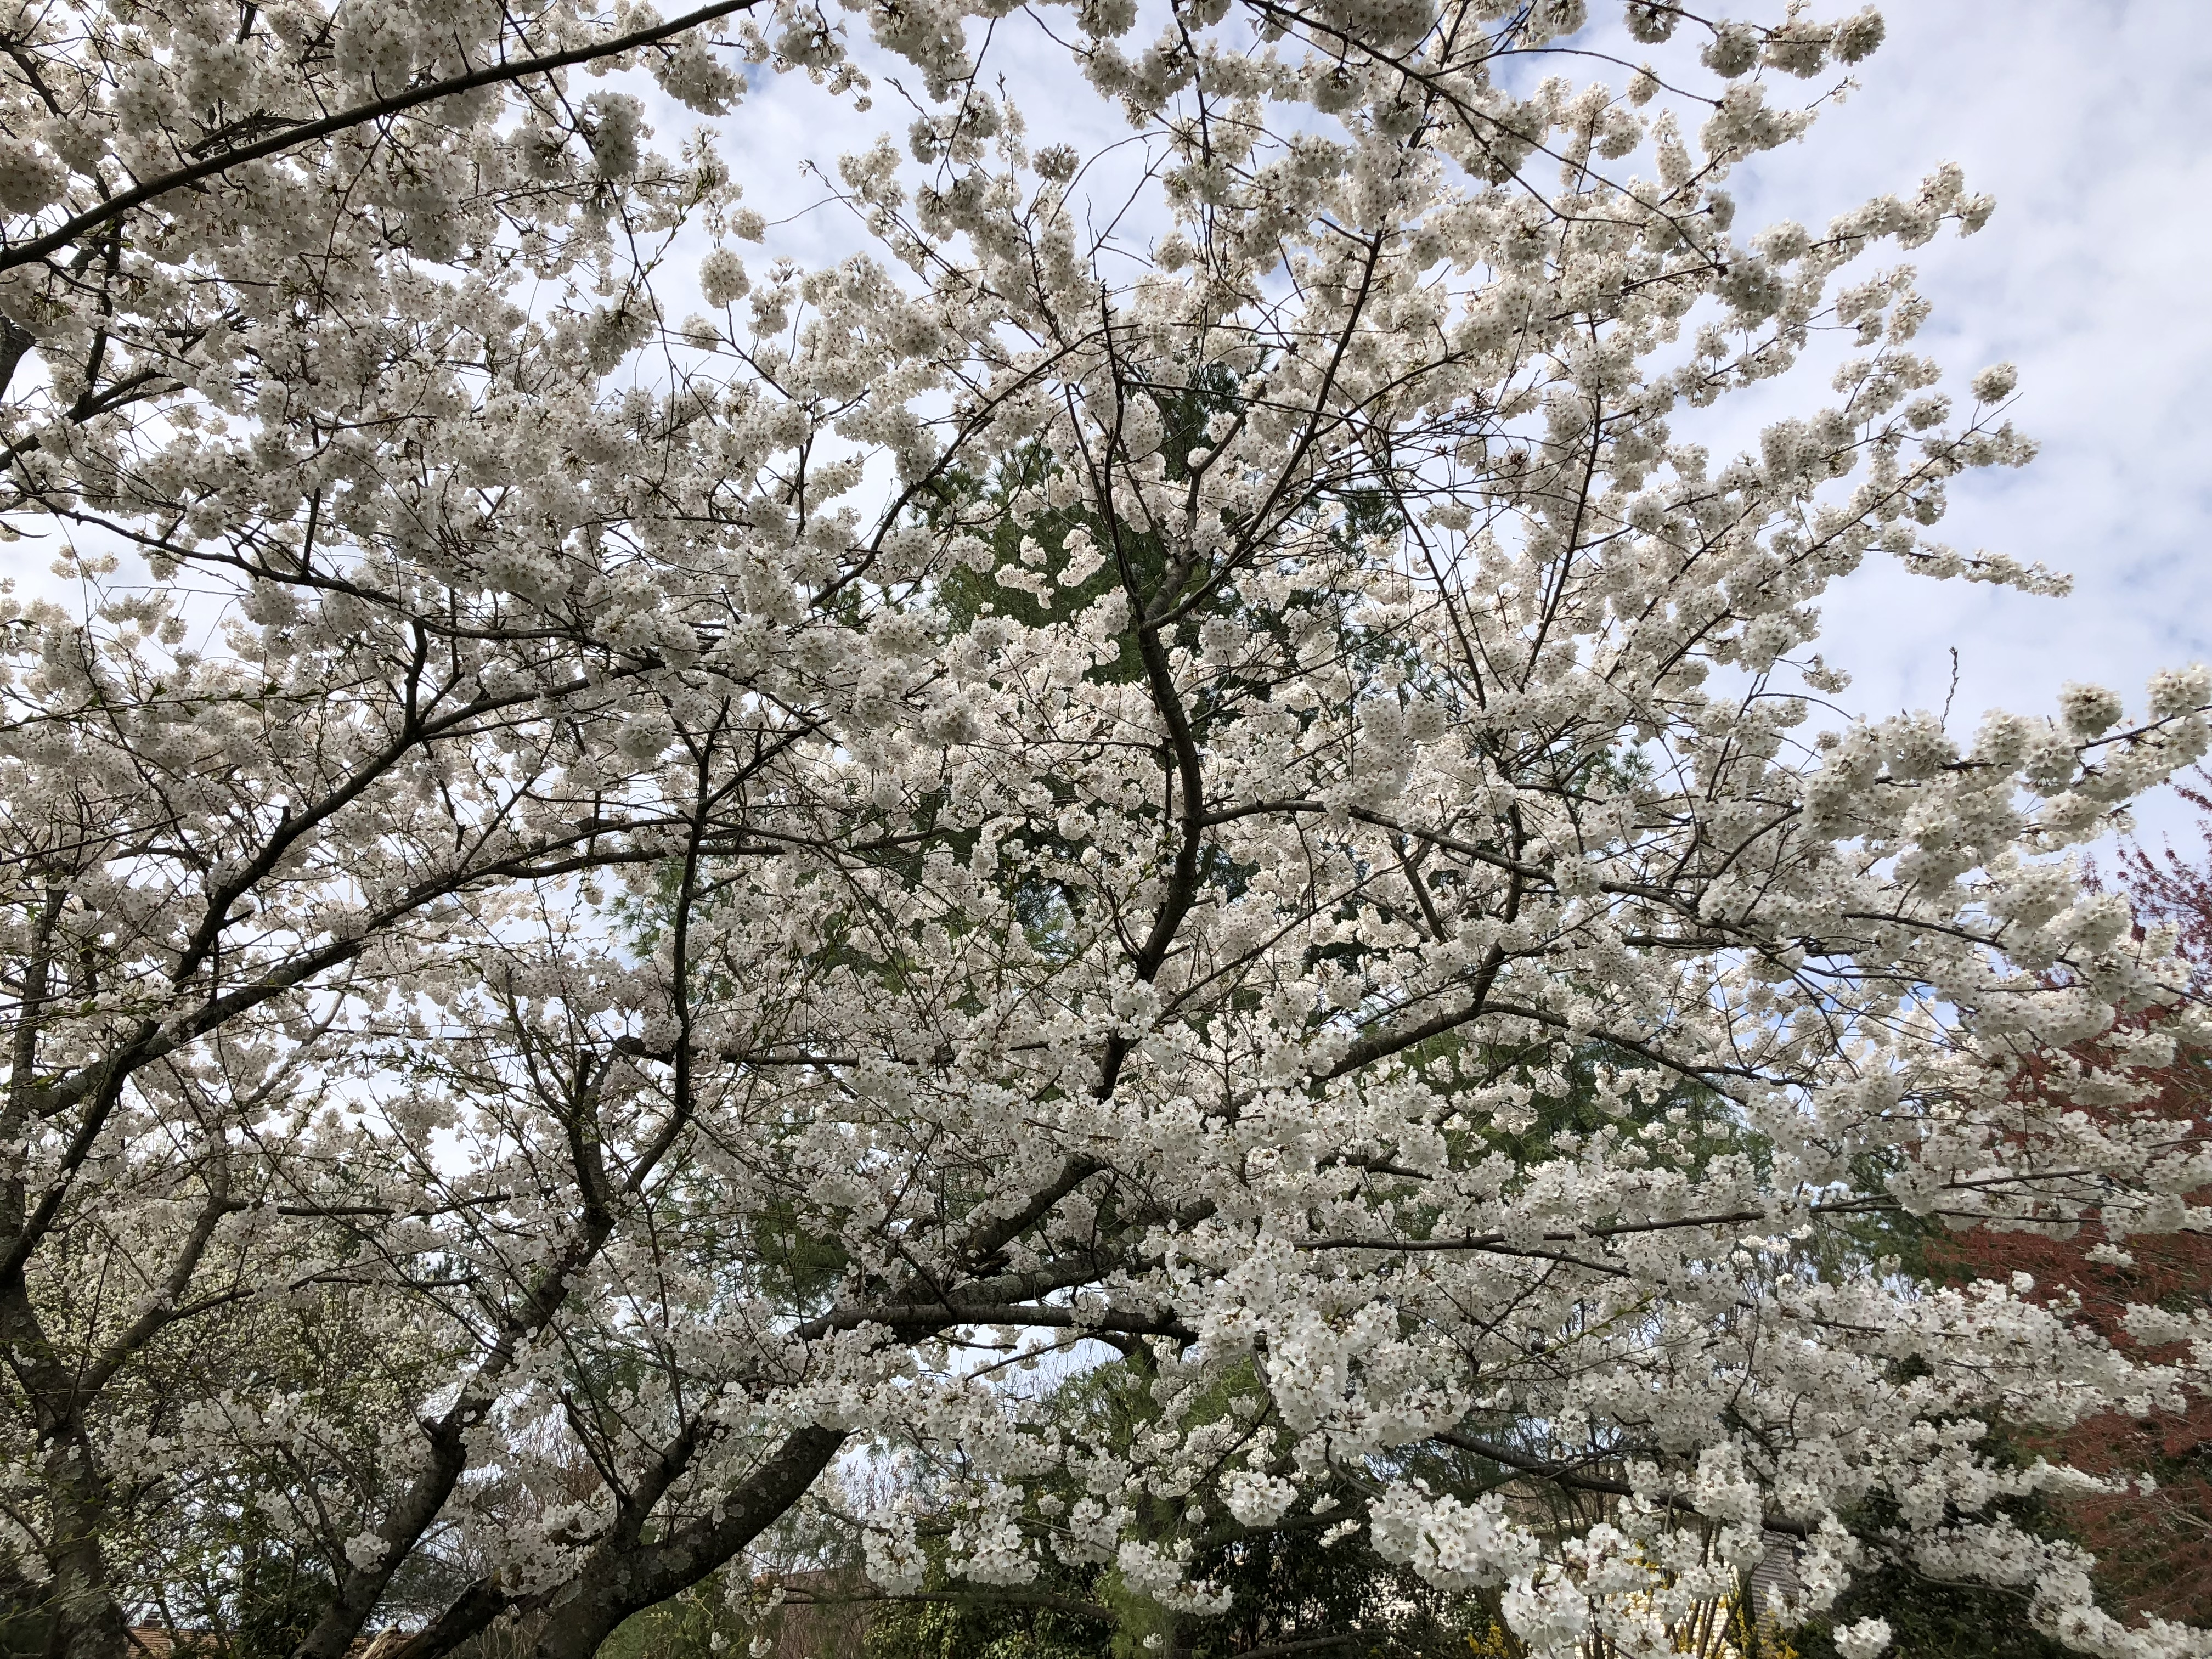 2019-04-06 13 01 07 White Flowering Cherry blossoms along Franklin Farm Road in the Franklin Farm section of Oak Hill, Fairfax County, Virginia.jpg